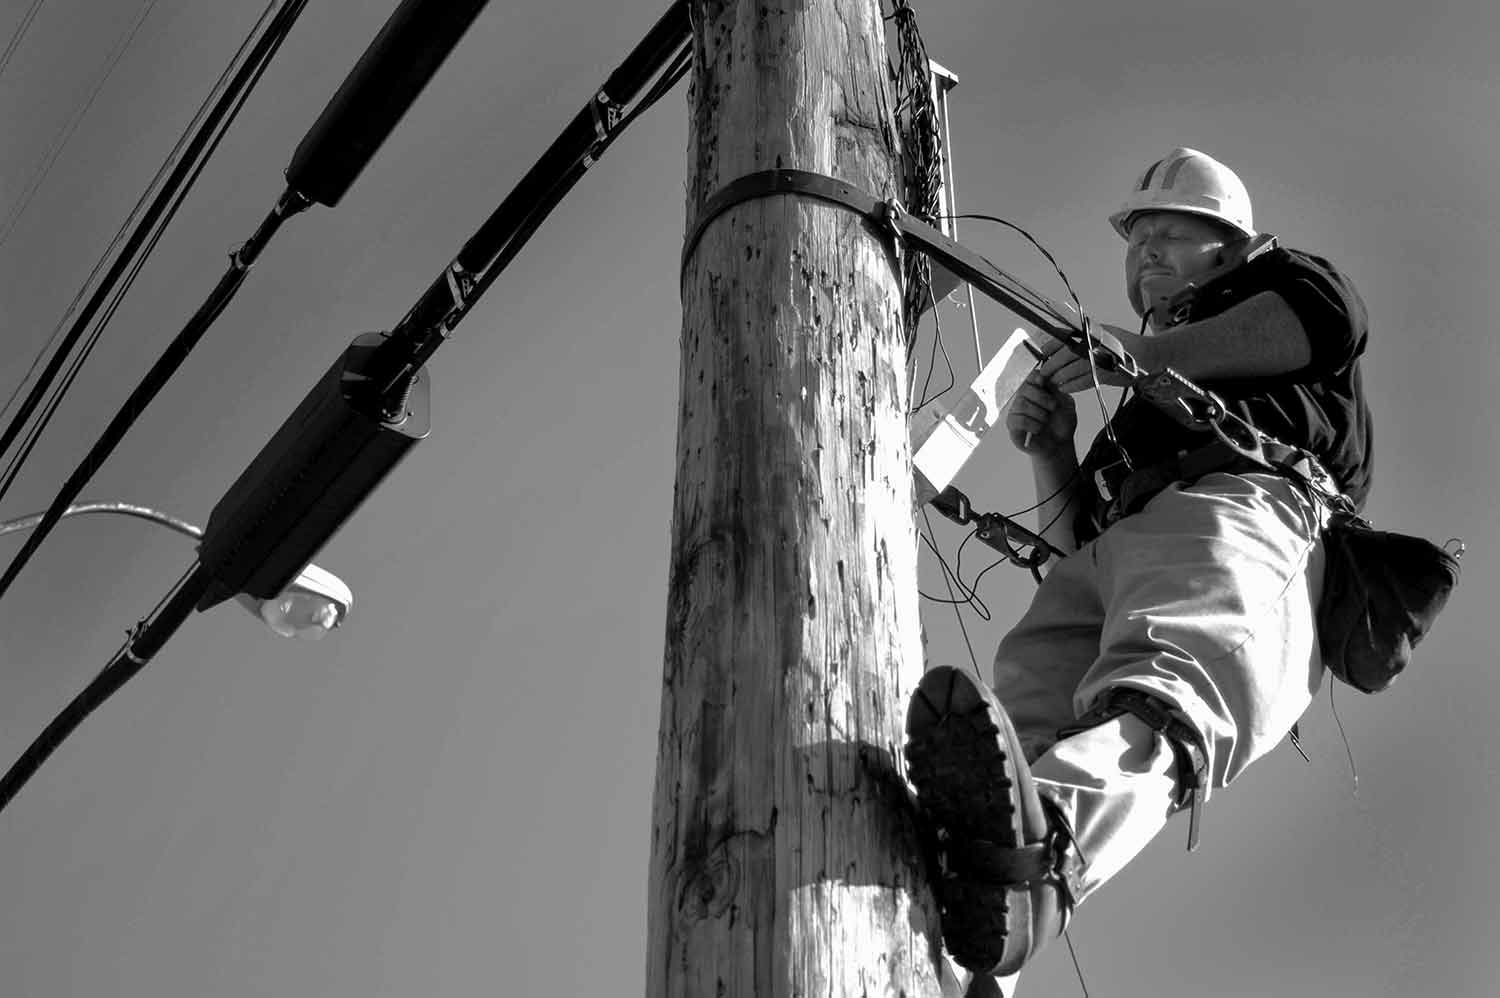 Eric Partin of Bell South works on the phone lines above Lafollette. photo by Beth Liggett - 2005